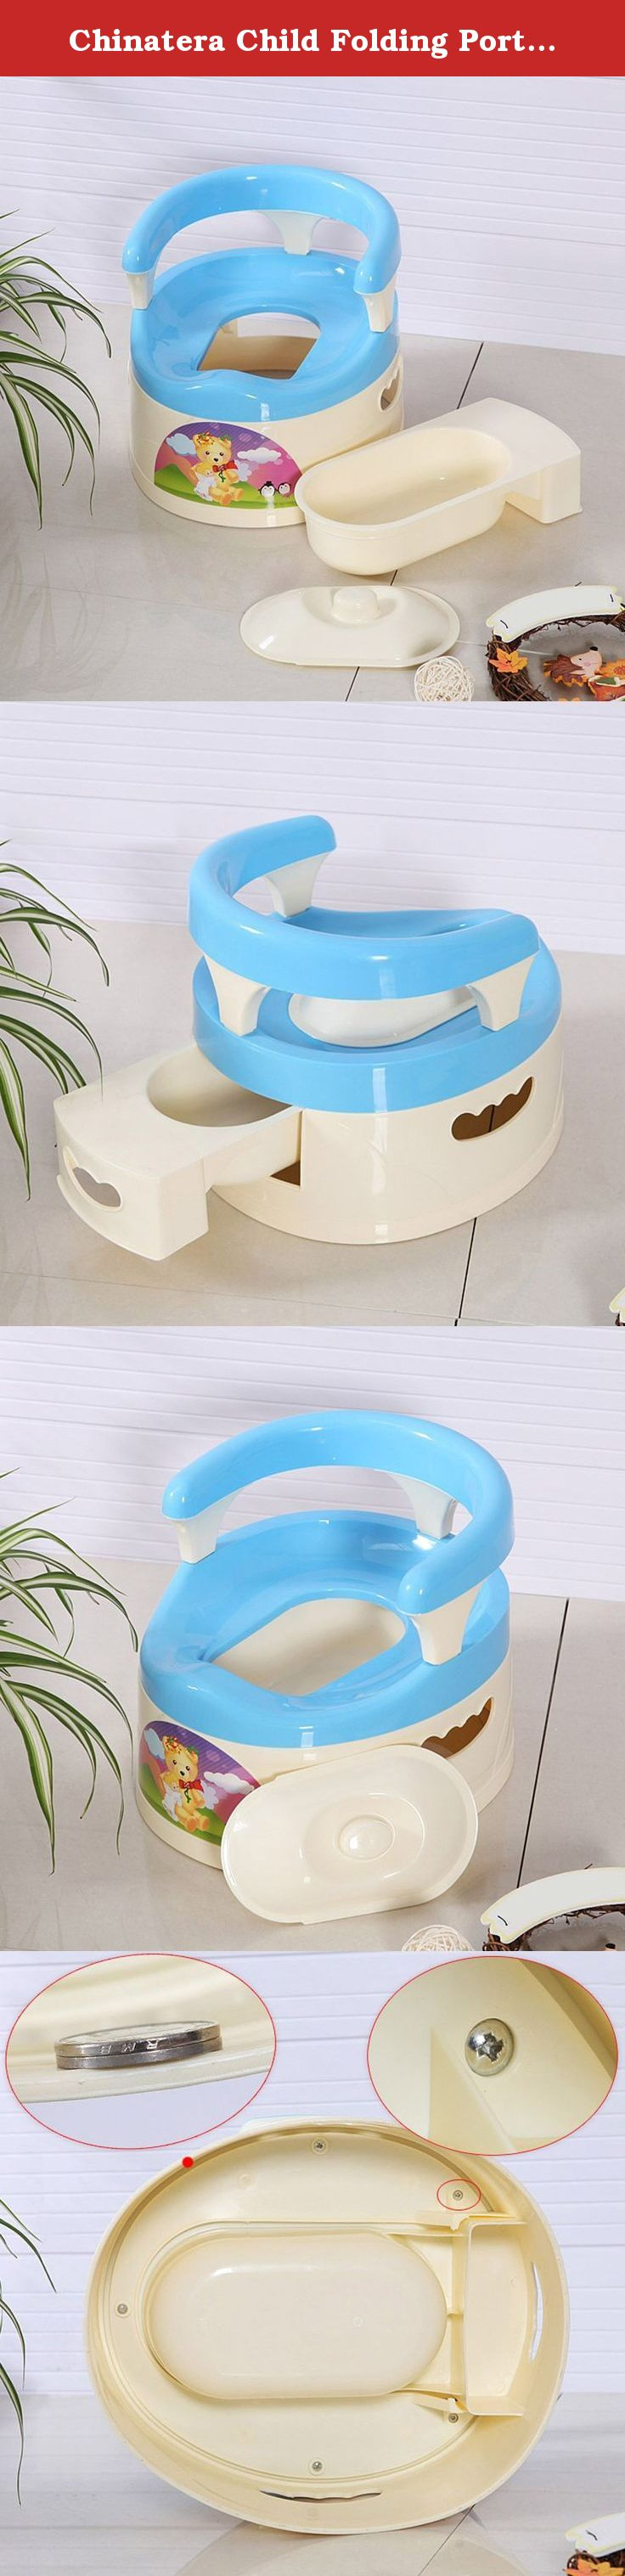 Potty Chair Large Child Chairs For Hip Pain Chinatera Folding Portable Drawer Carrying Toilet Baby Color Random Features 100